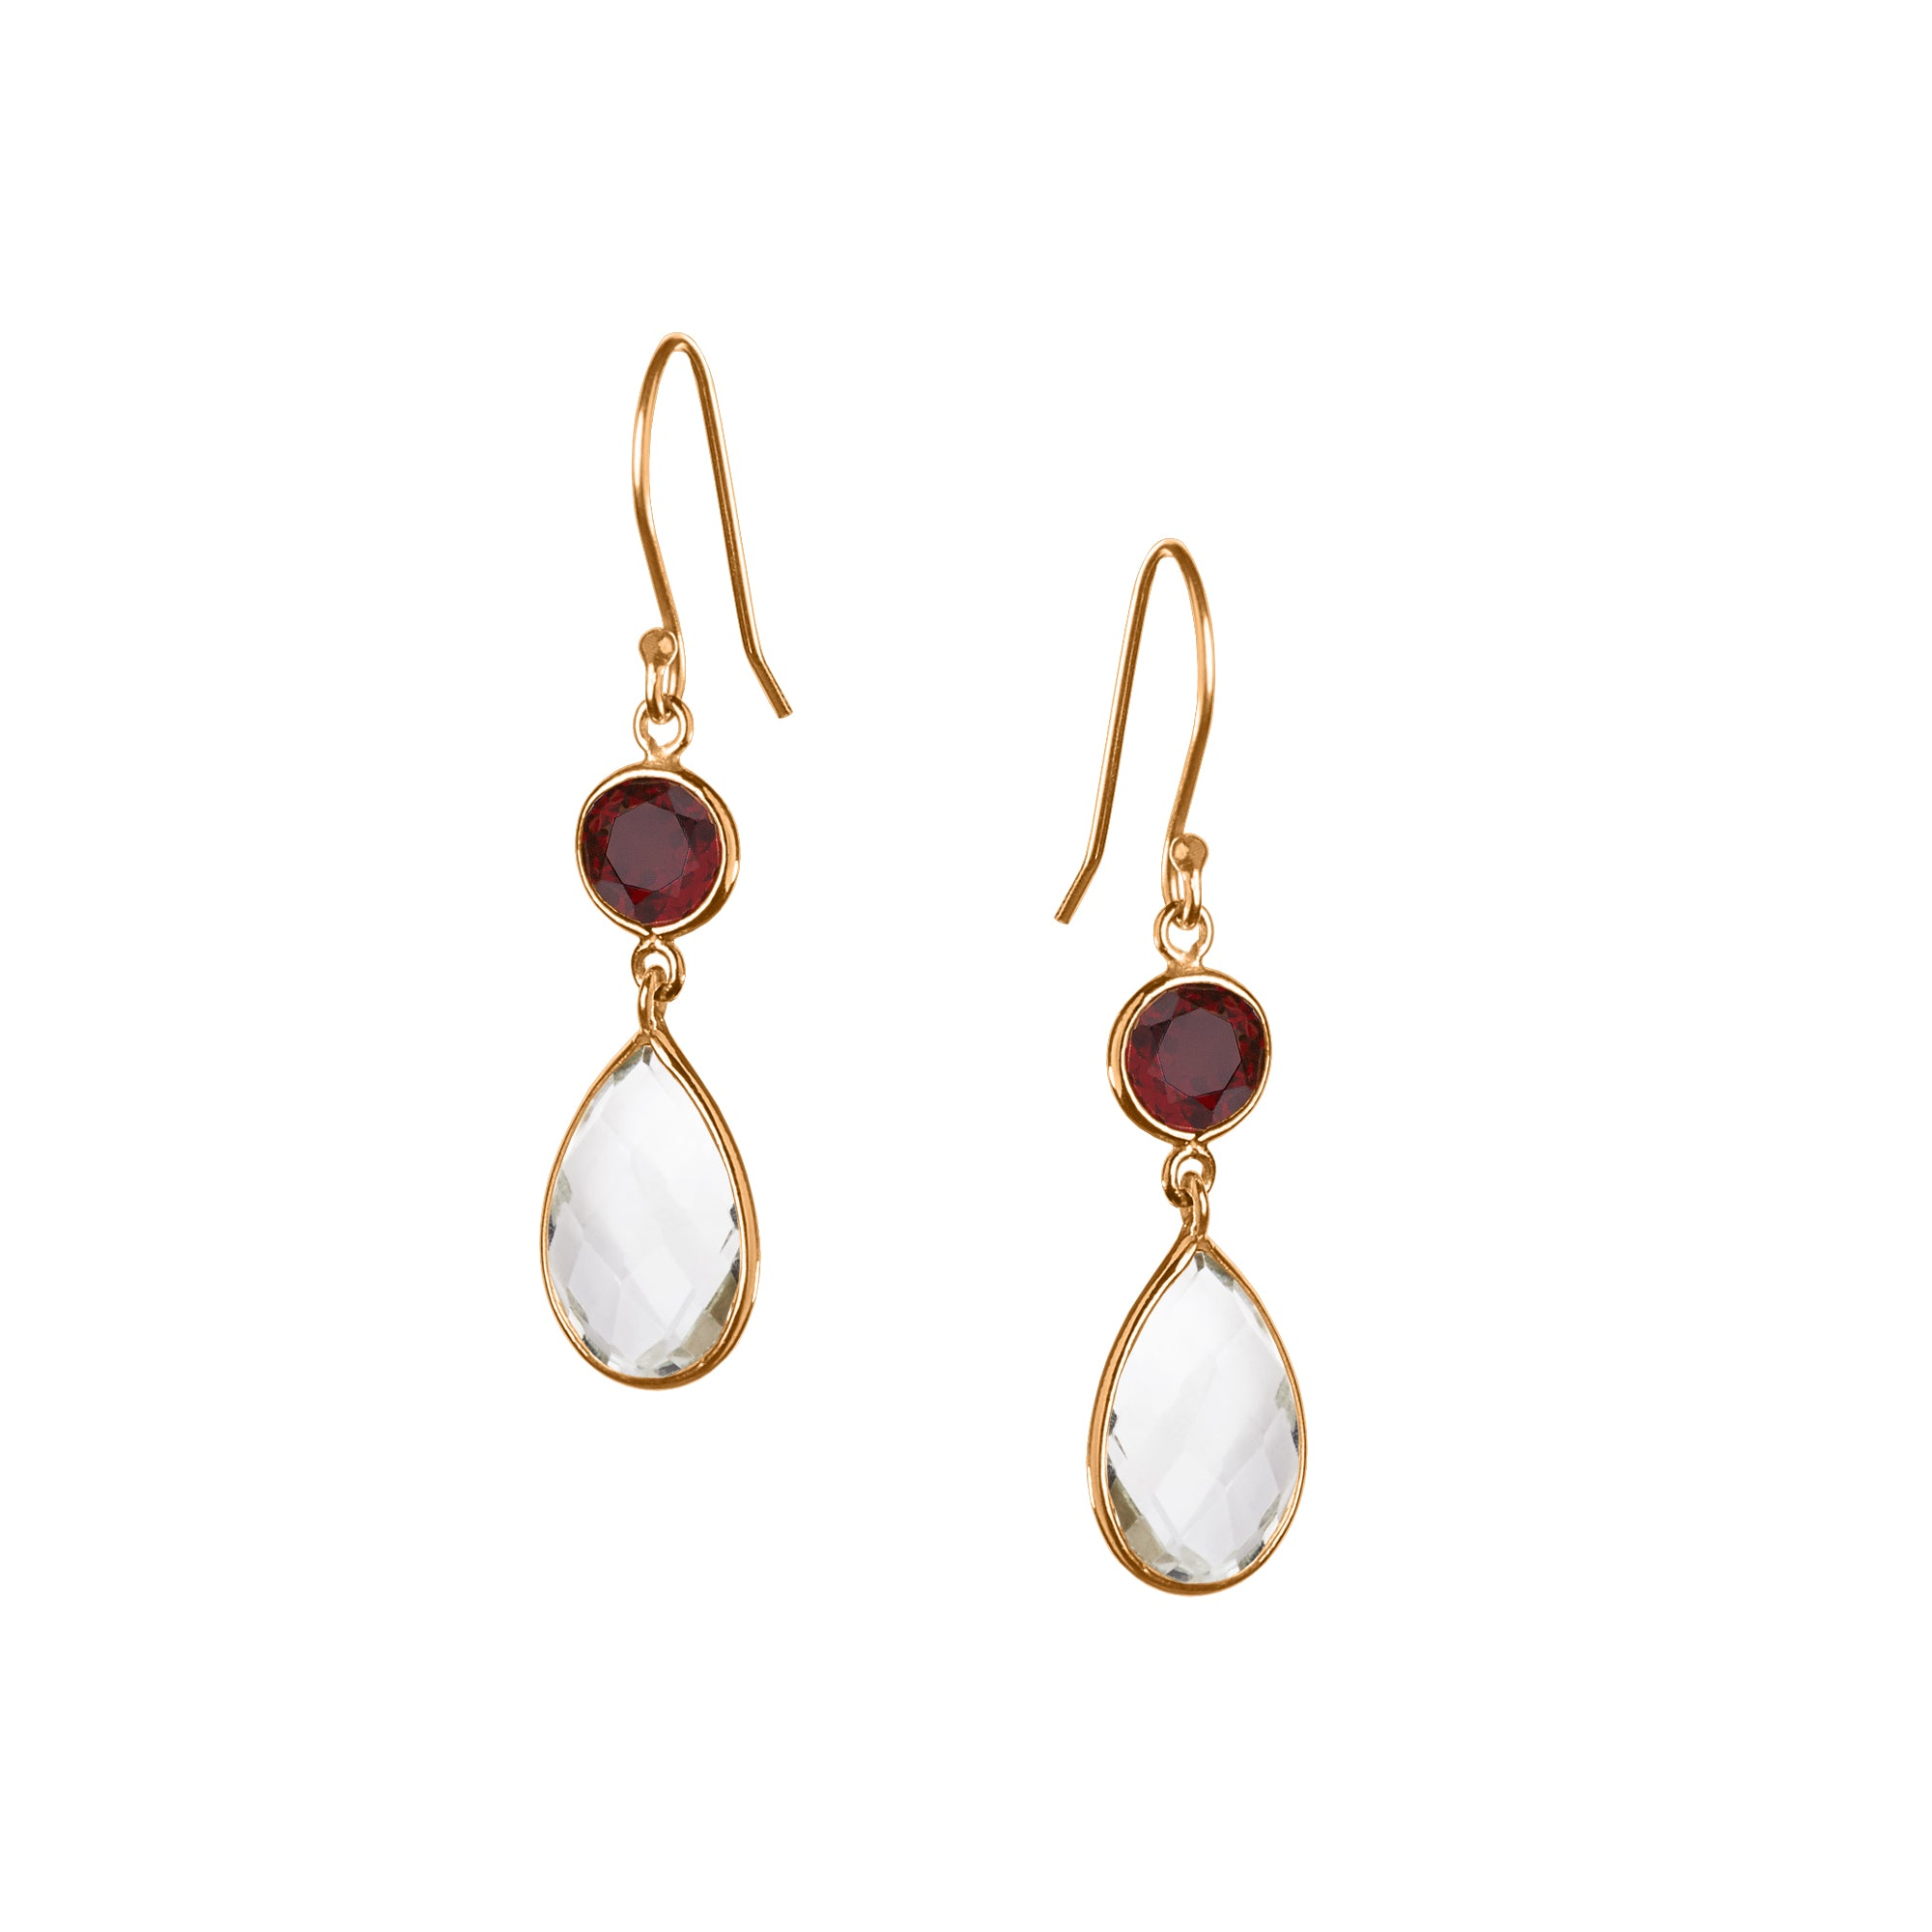 Large Apple and Pears Drop Earring in Gold with Garnet and Amethyst